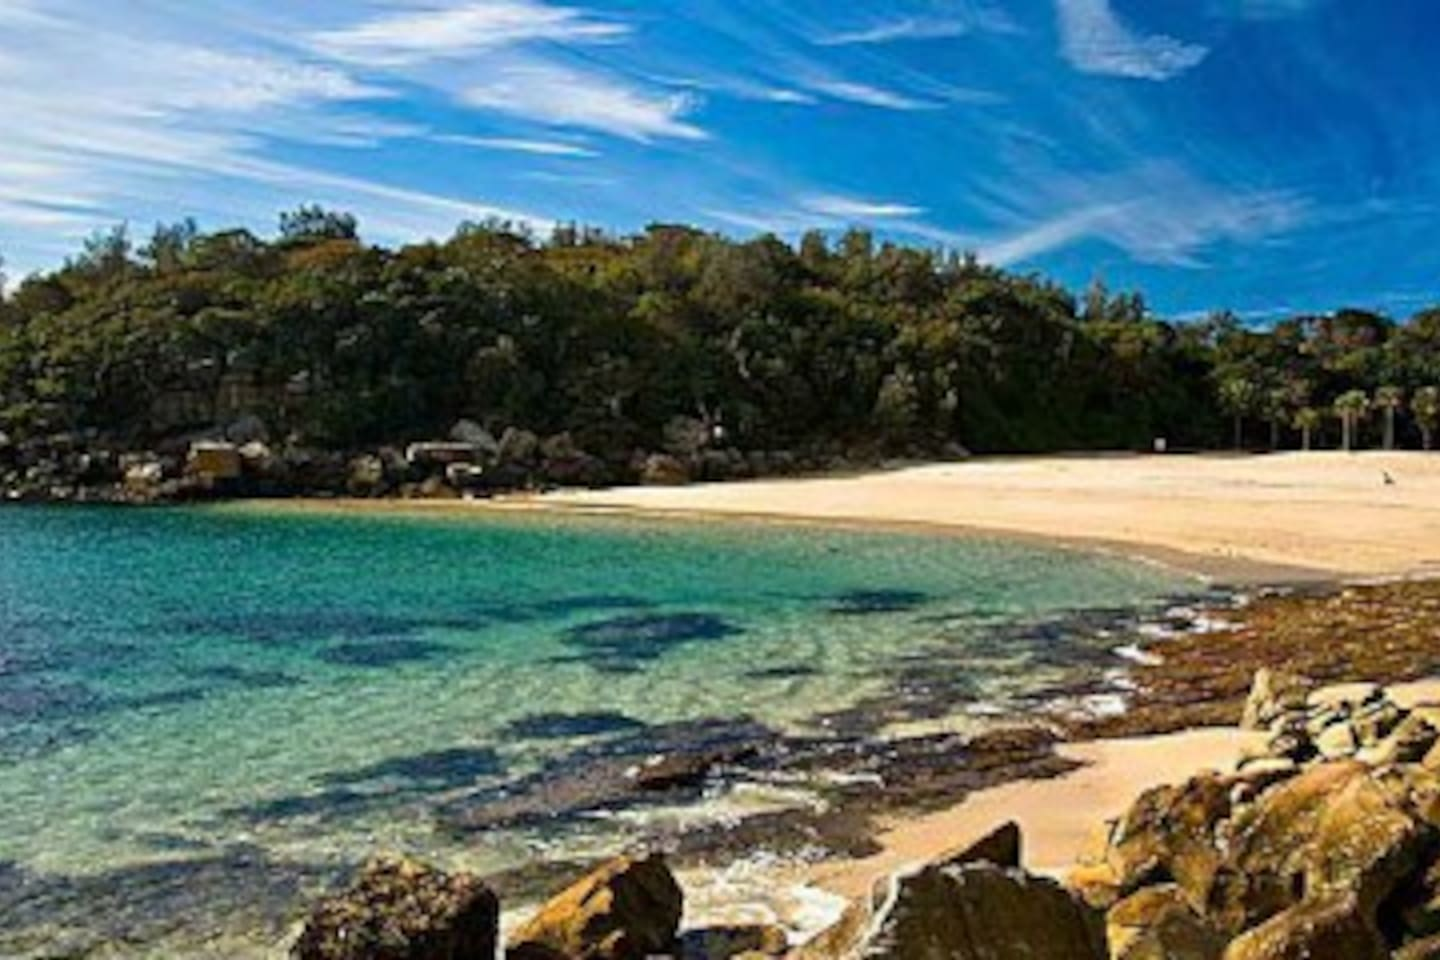 Shelly beach - under 5 min walk